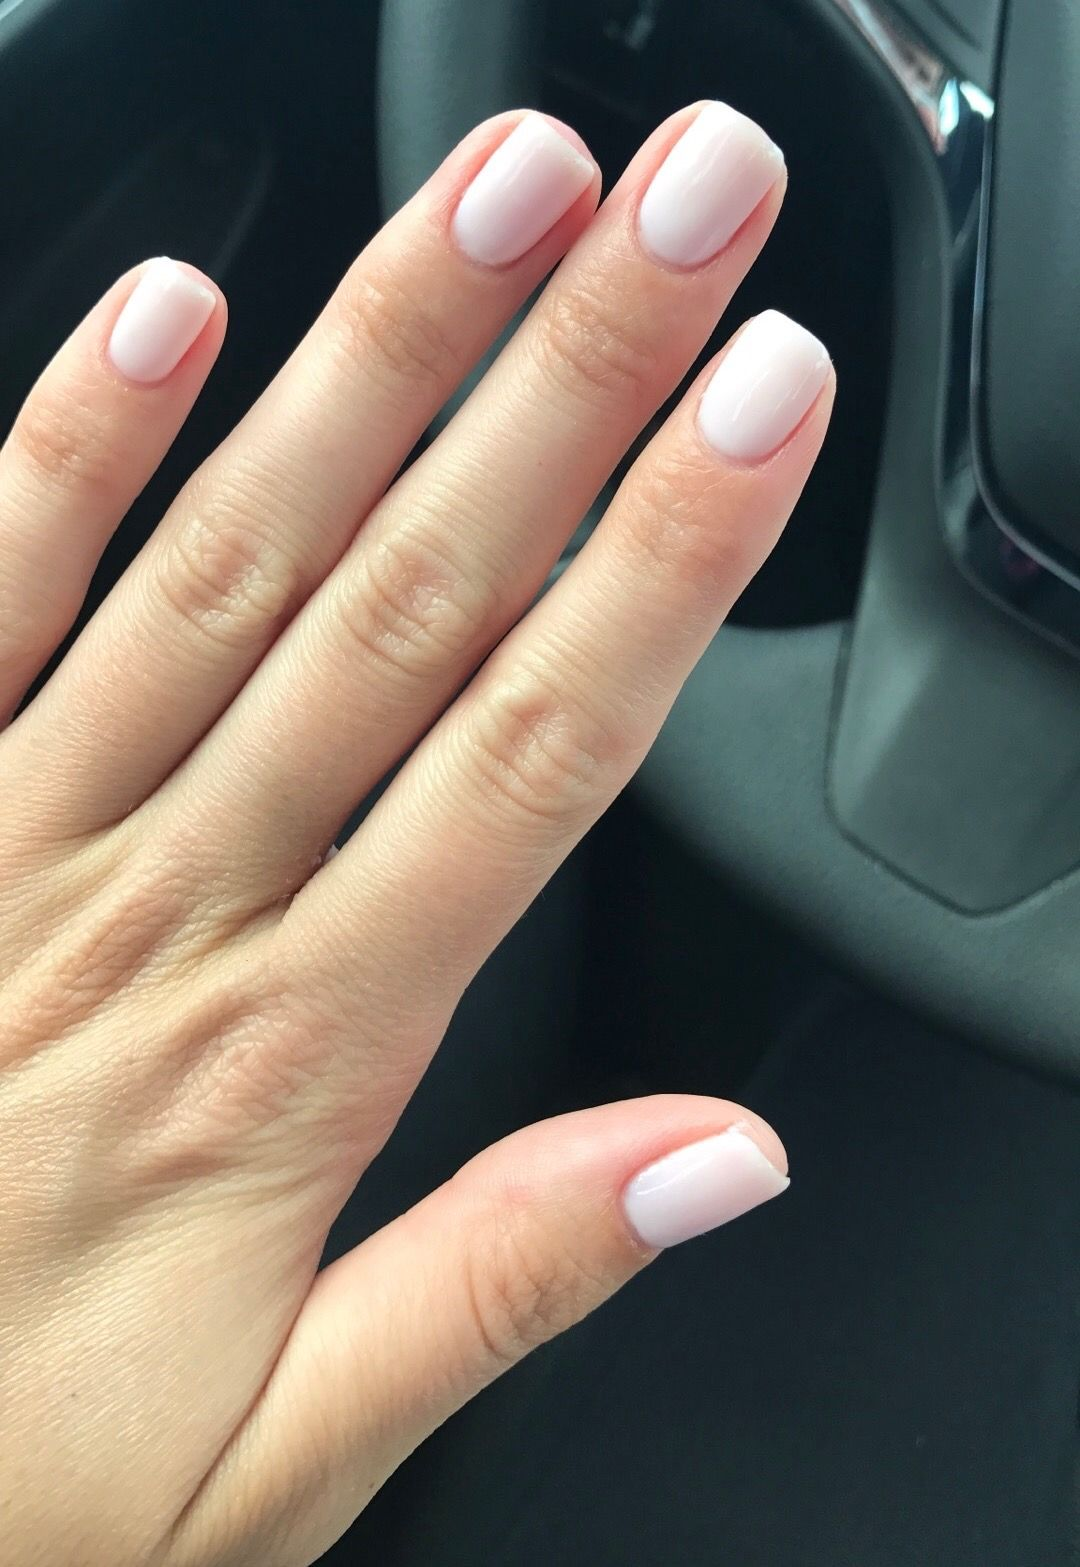 Funny Bunny X2 Plus Bubble Bath Opi With Images Neutral Nails